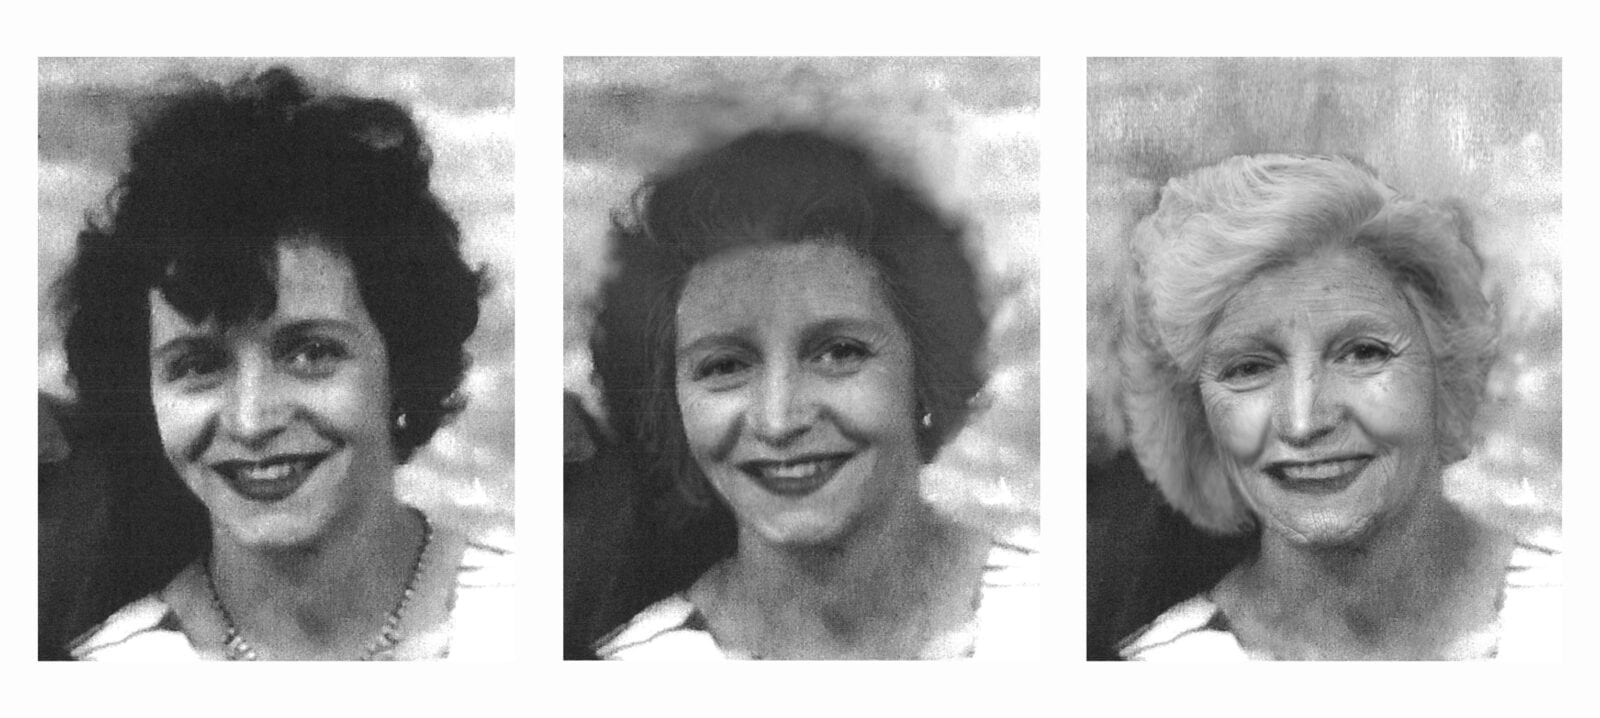 Police release age progression image of woman who disappeared in Manchester more than 50 years ago, The Manc